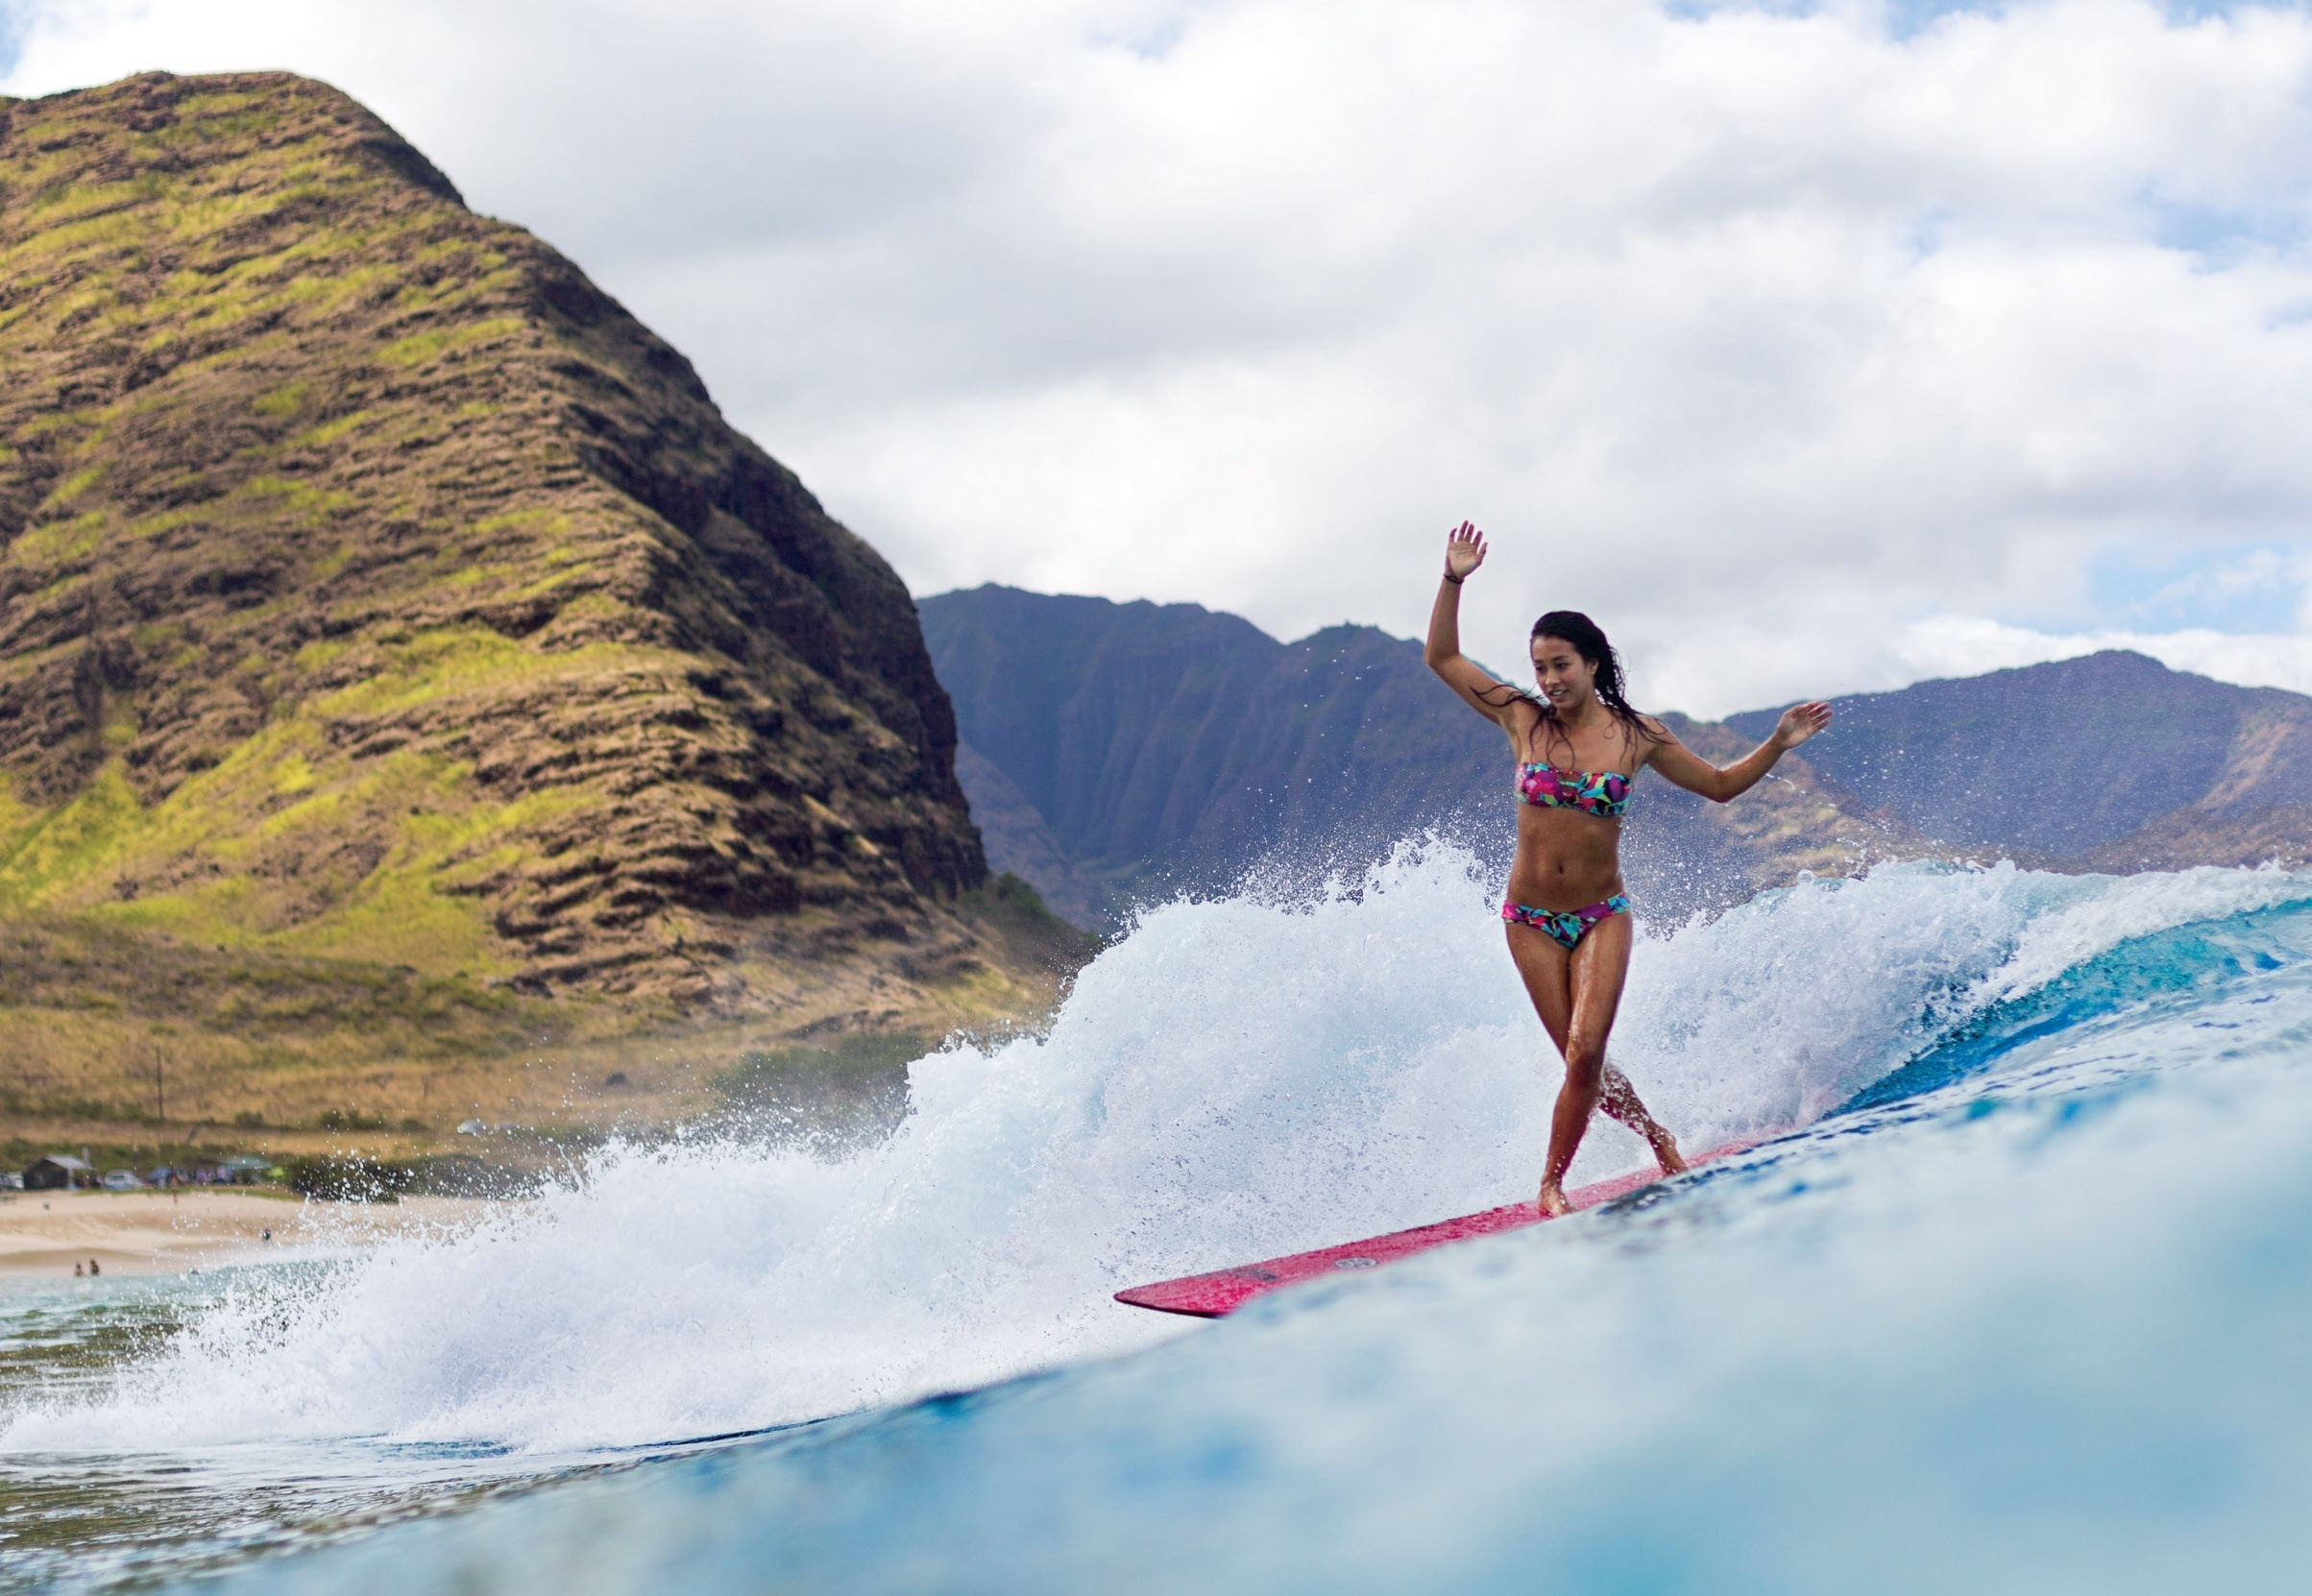 Surfing ocean girl surfing mountain r wallpaper 2407x1662 117561 2407x1662